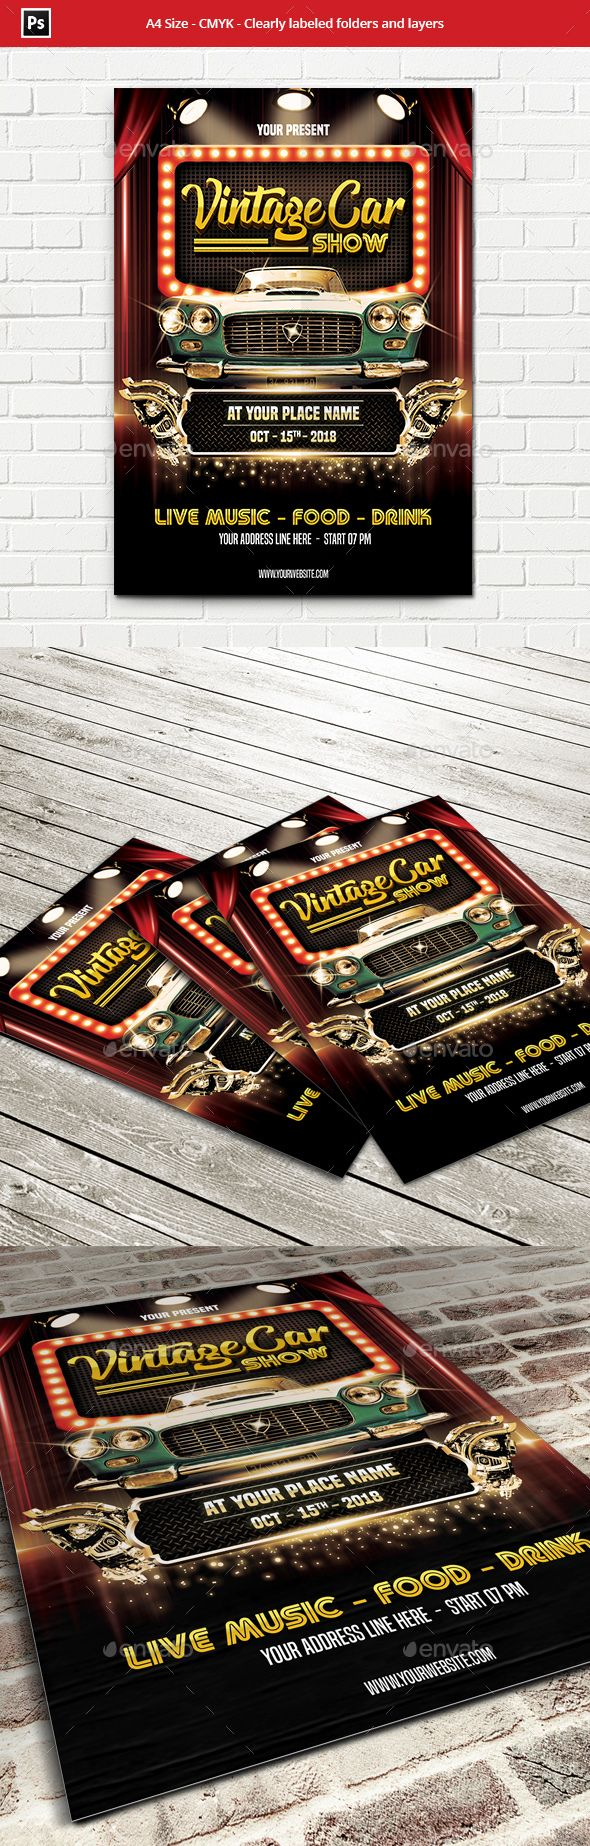 Vintage Car Show Flyer Template Flyer Design Inspiration - Blank car show flyer